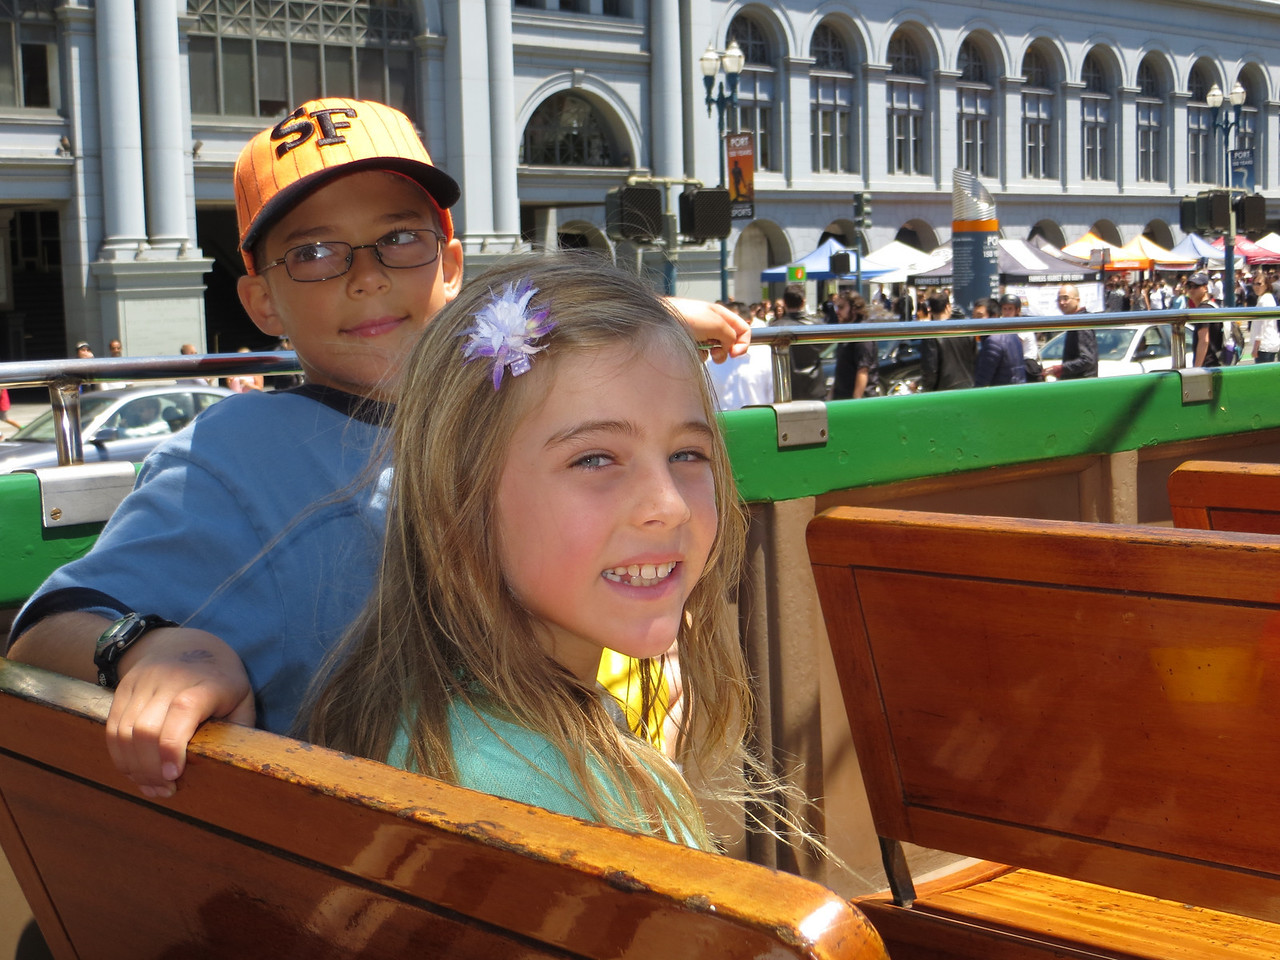 Austin and Sofia on the trolley